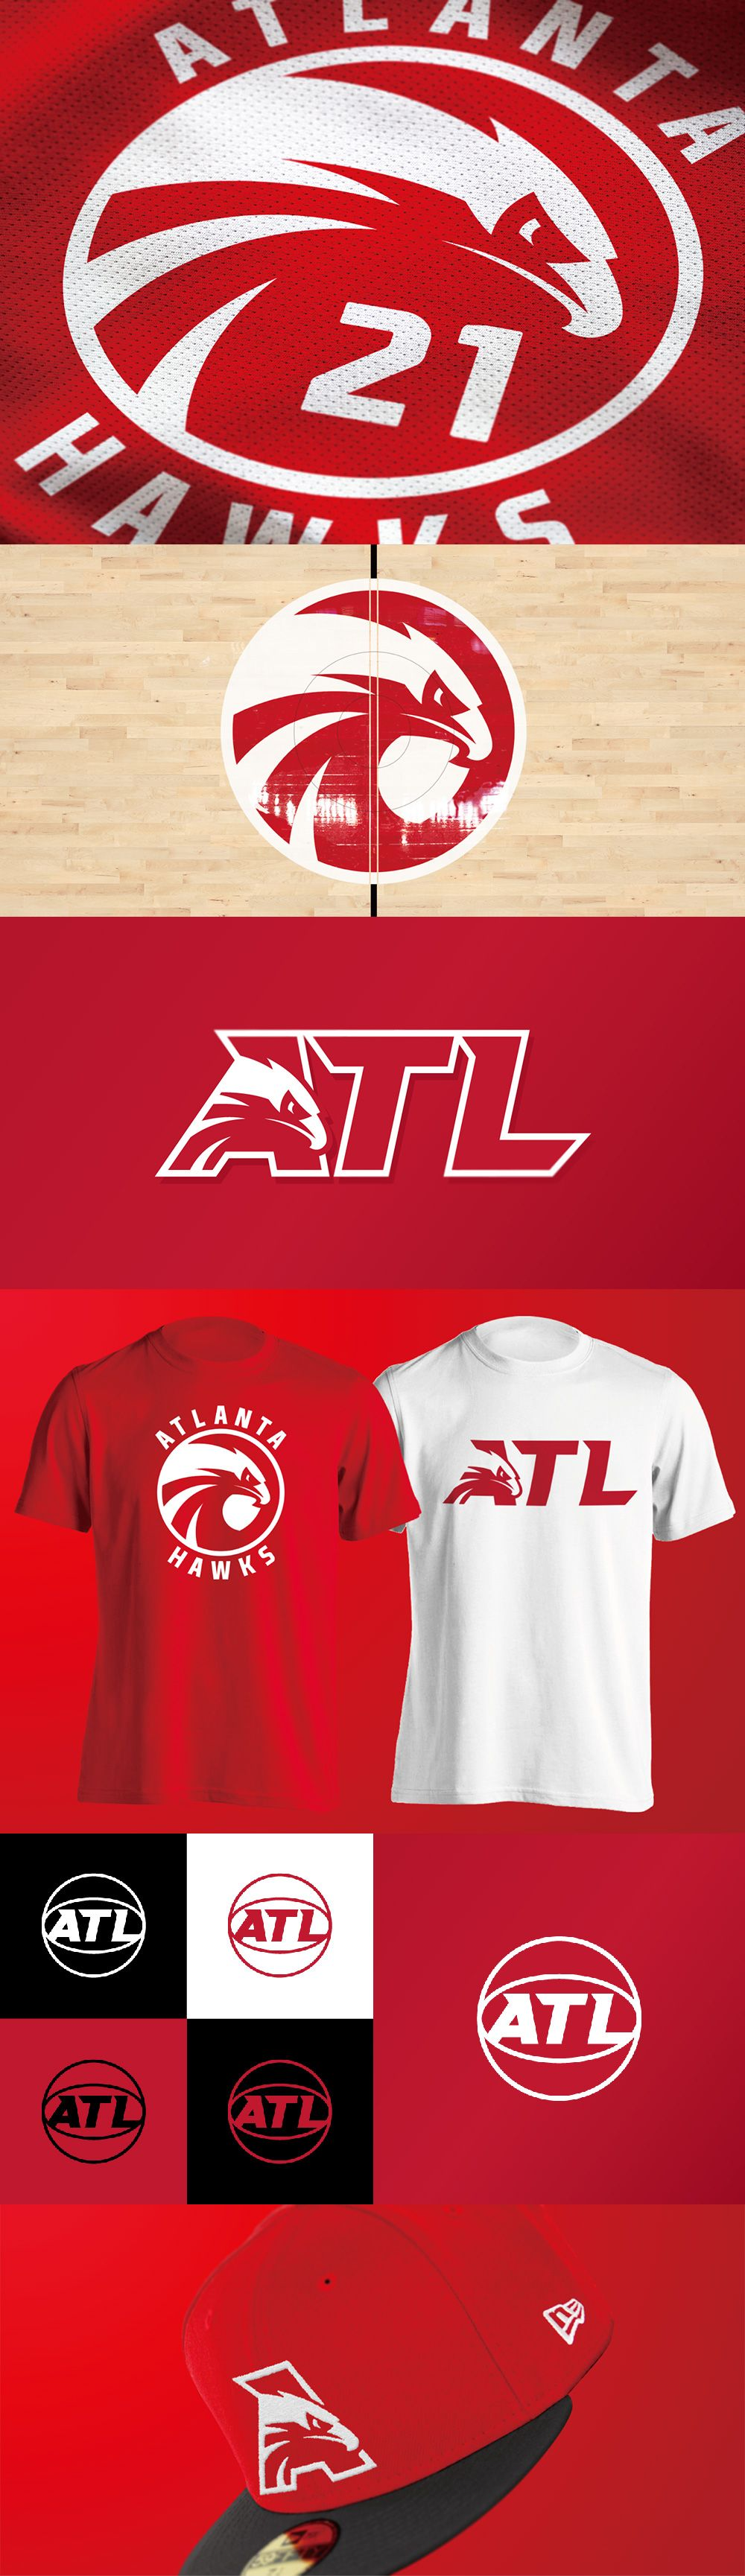 football team logos without names